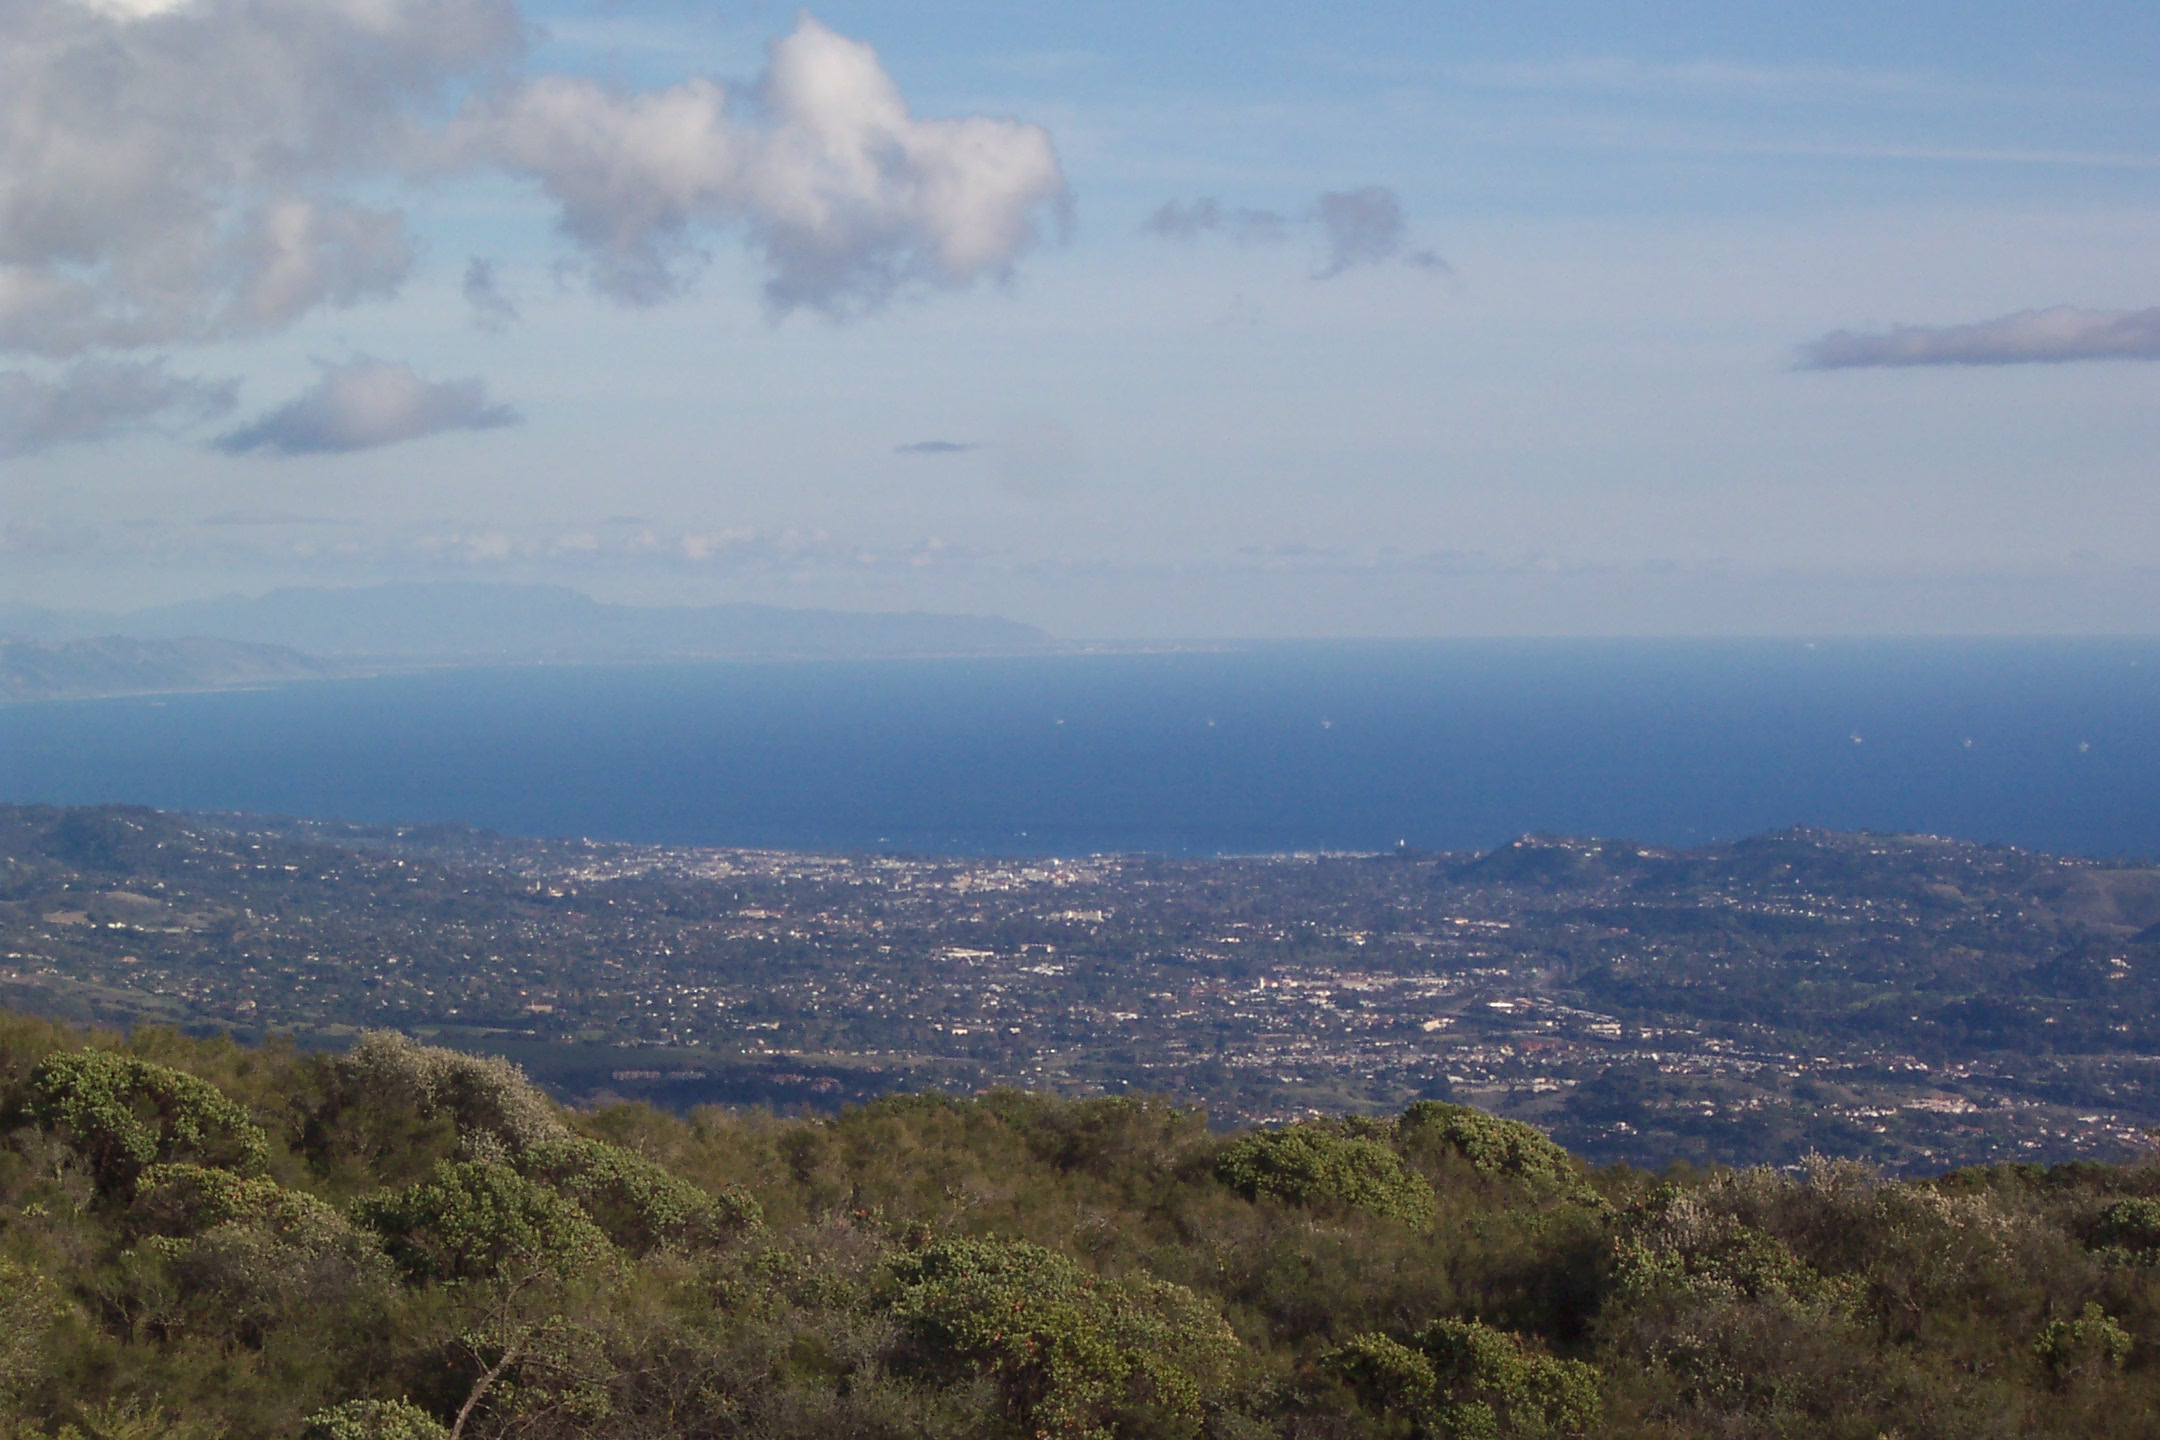 Santa Barbara from overlooking mountains